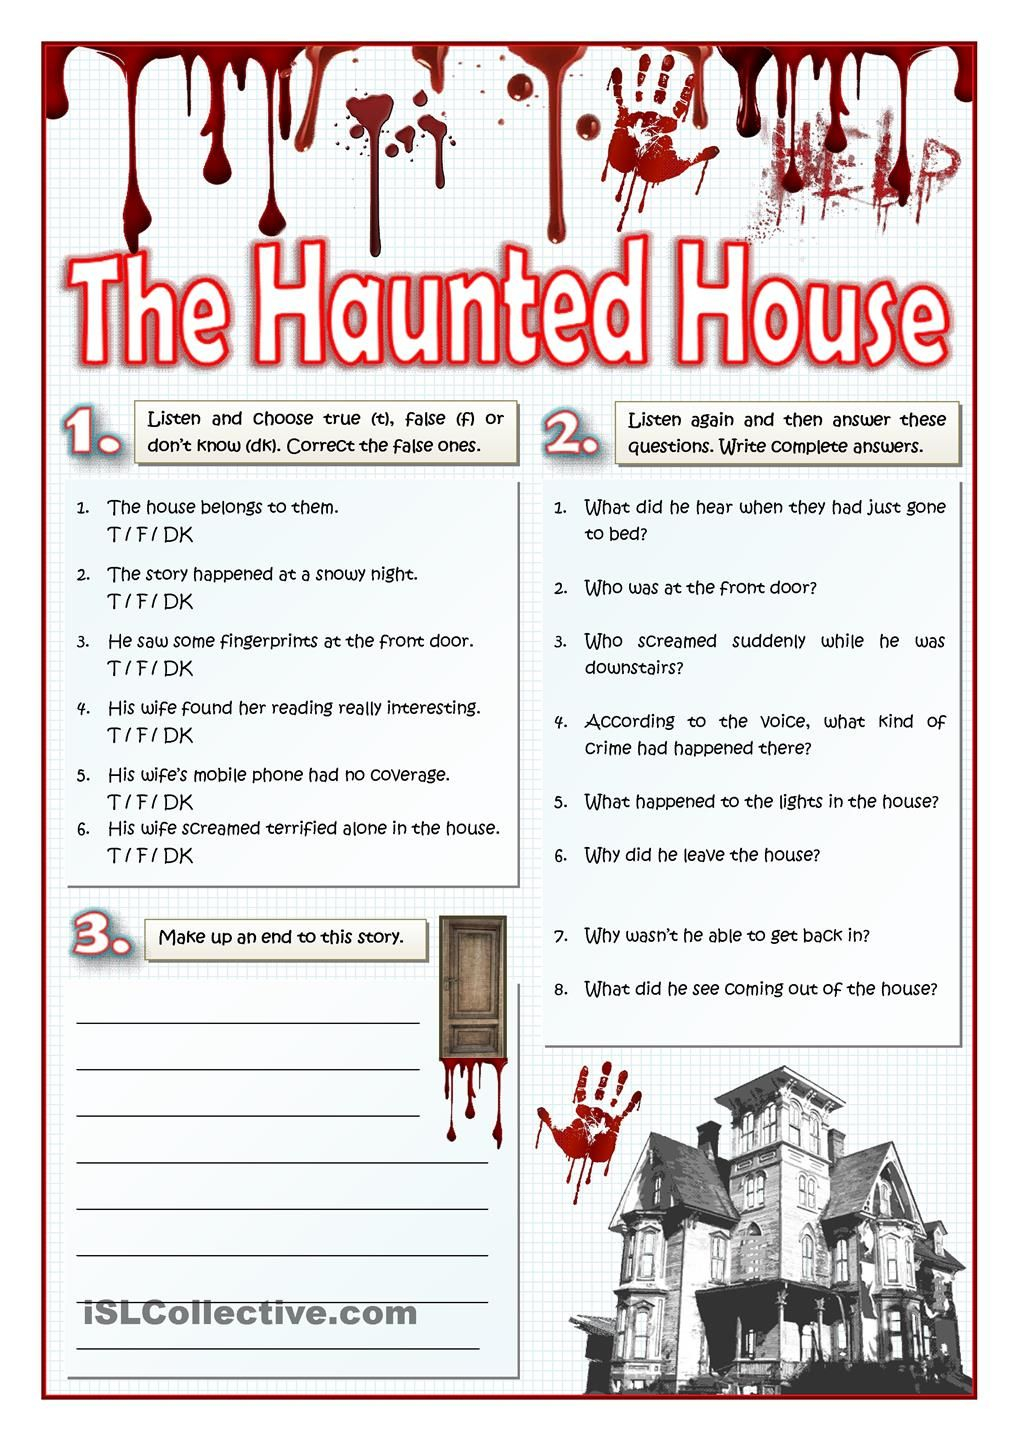 The Haunted House - Listening And Writing | Actividades De